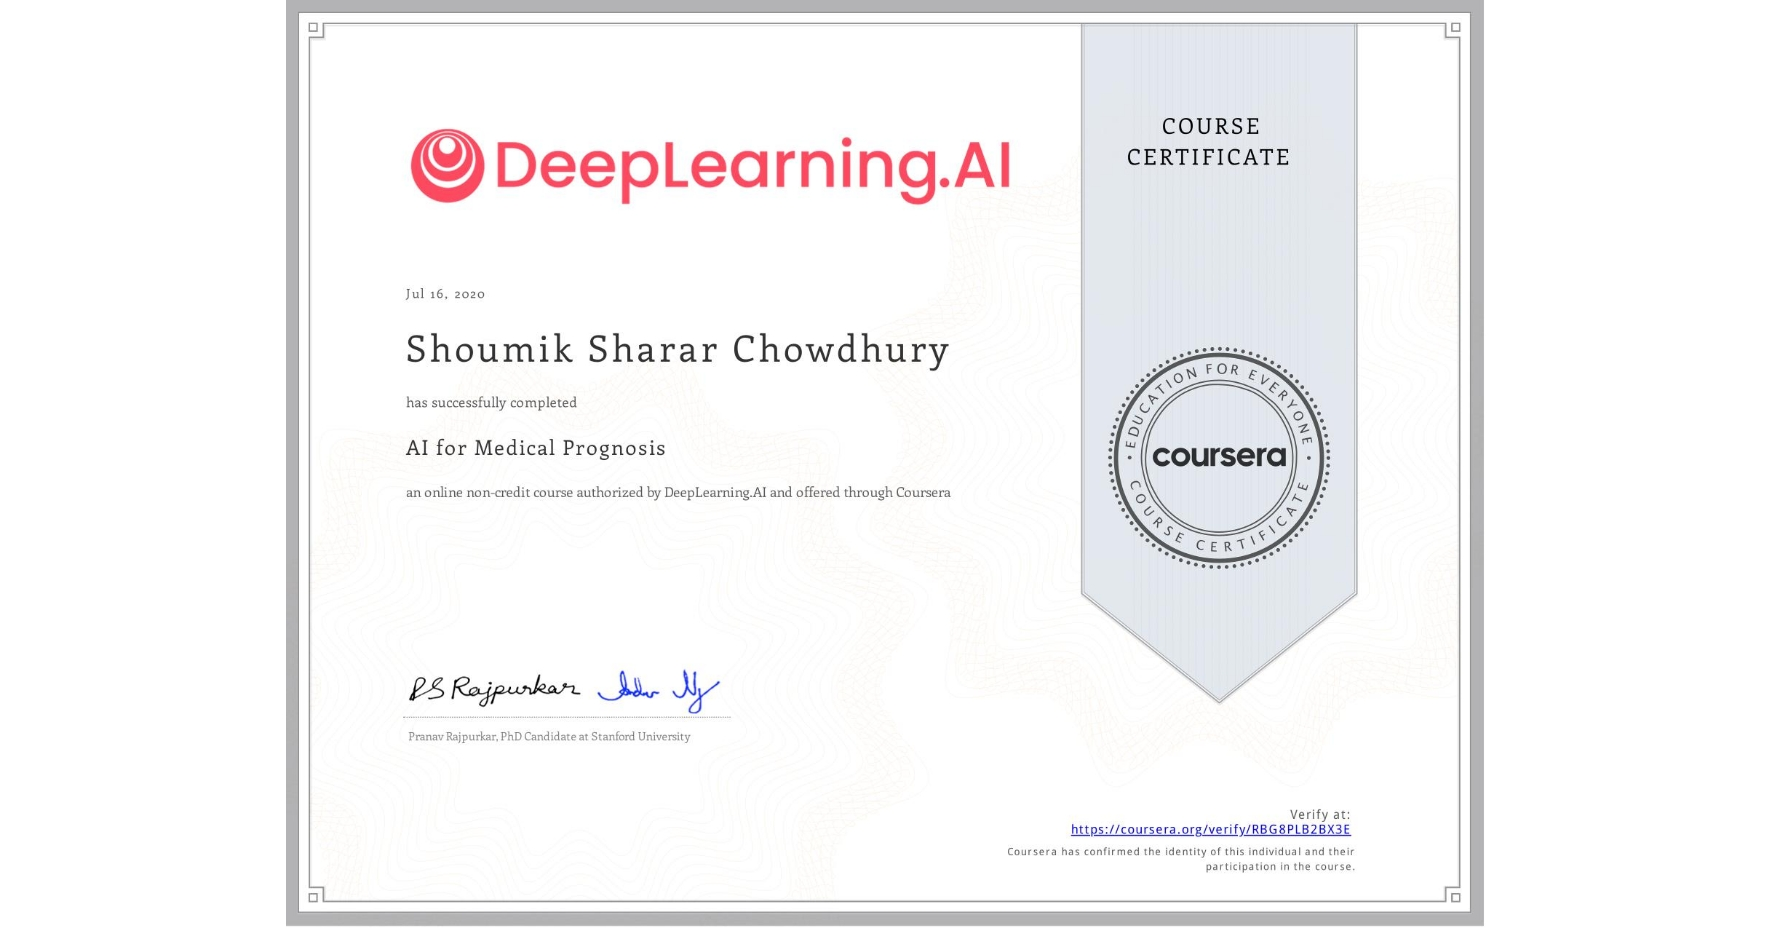 View certificate for Shoumik Sharar Chowdhury, AI for Medical Prognosis , an online non-credit course authorized by DeepLearning.AI and offered through Coursera